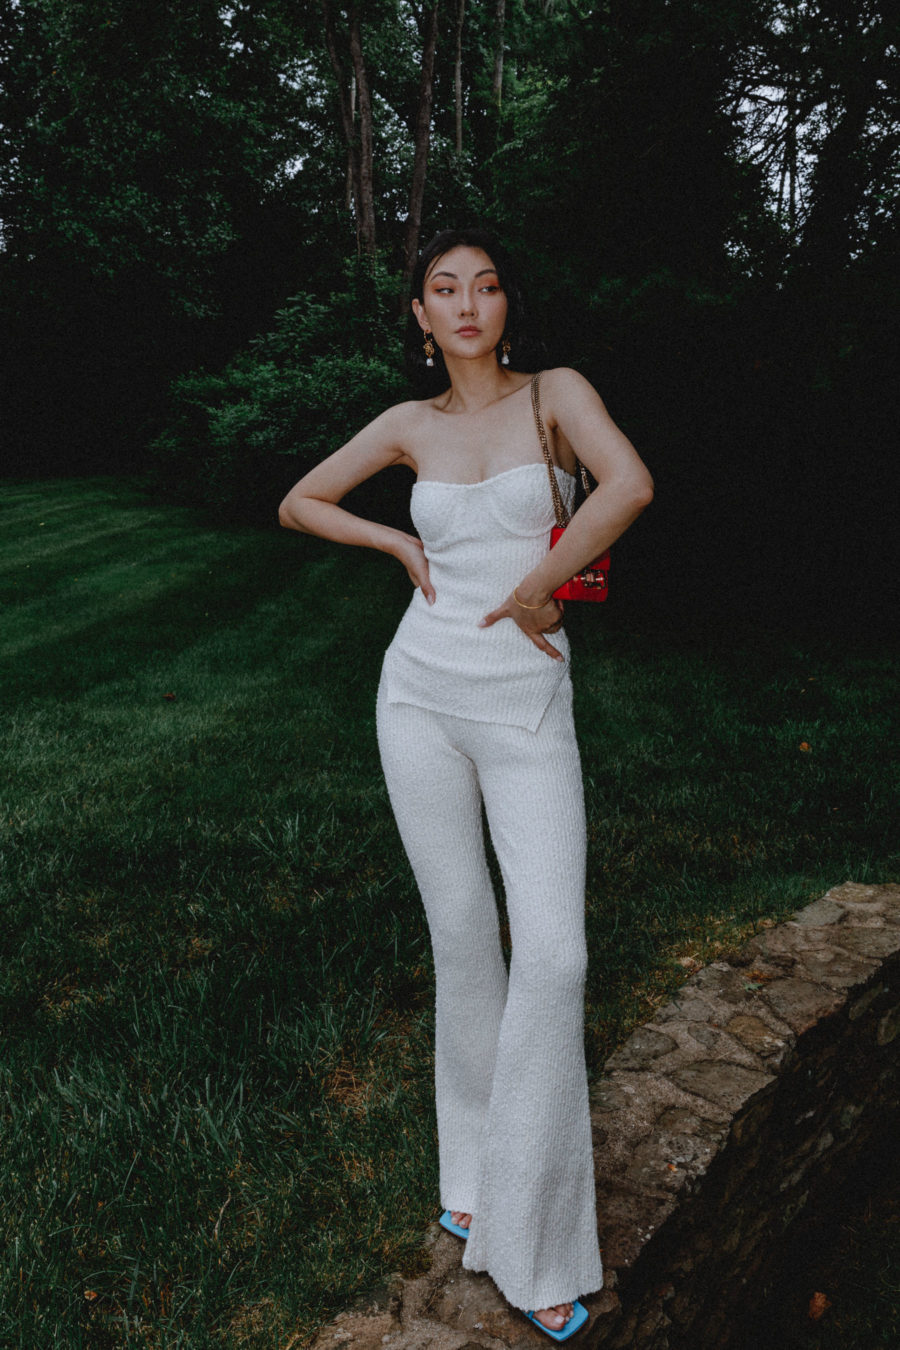 jessica wang wearing a helmut lang knit set for a stylish 4th of july outfit // Jessica Wang - Notjessfashion.com